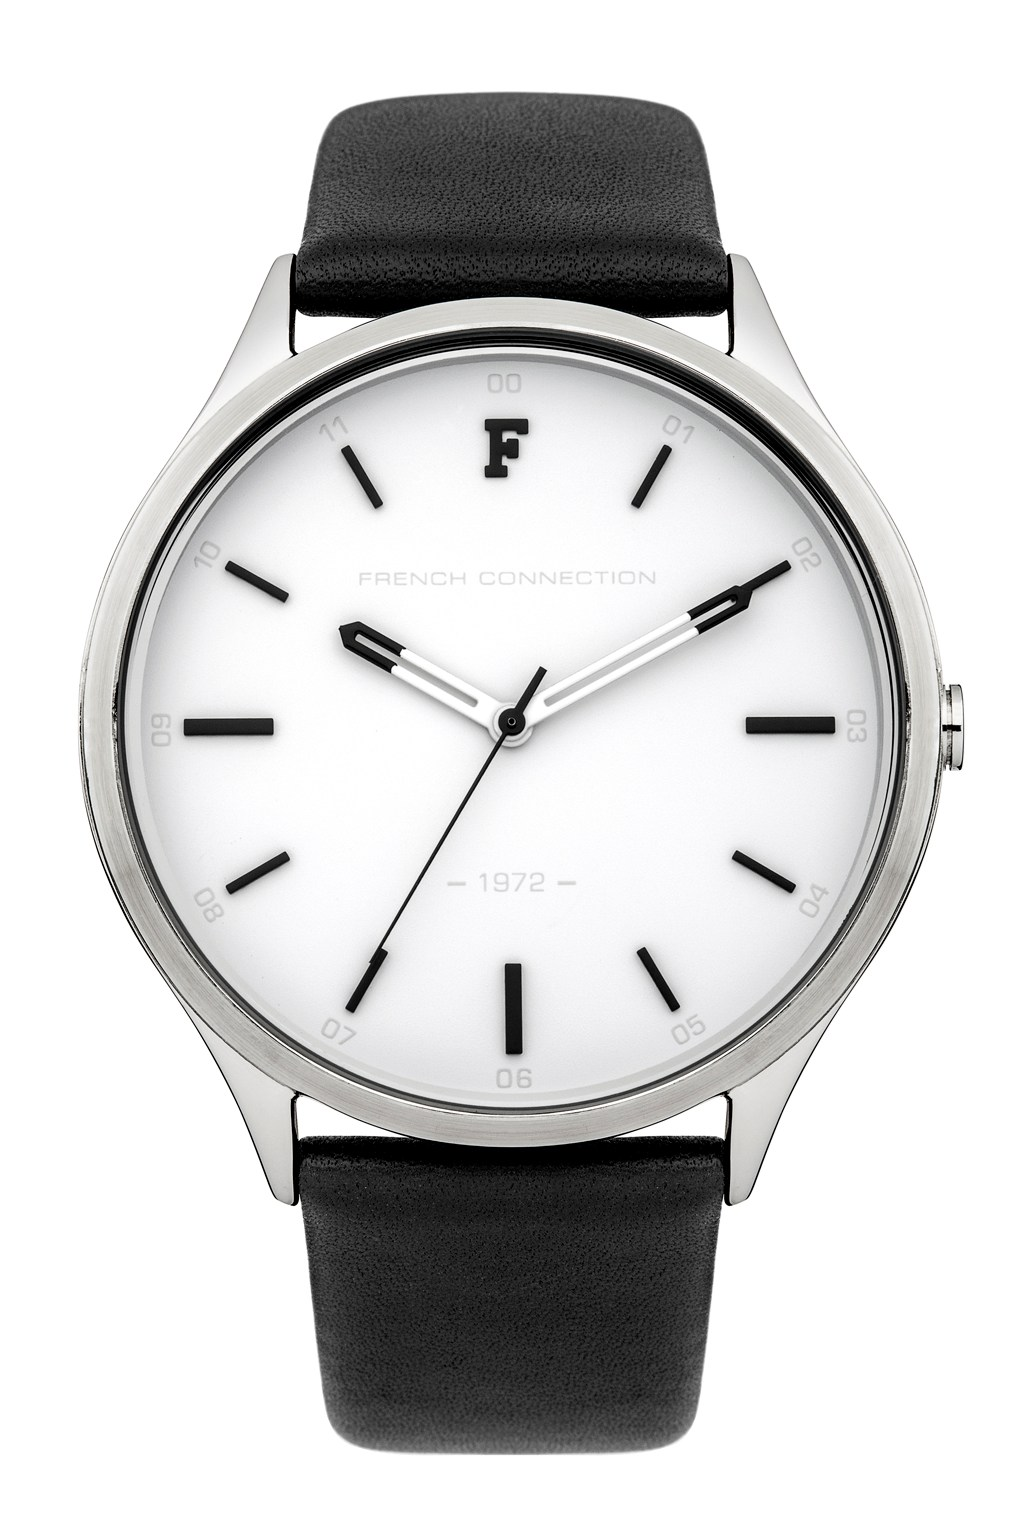 silver replica online bezel dial white tissot strap coutourier mens watch shop watches leather